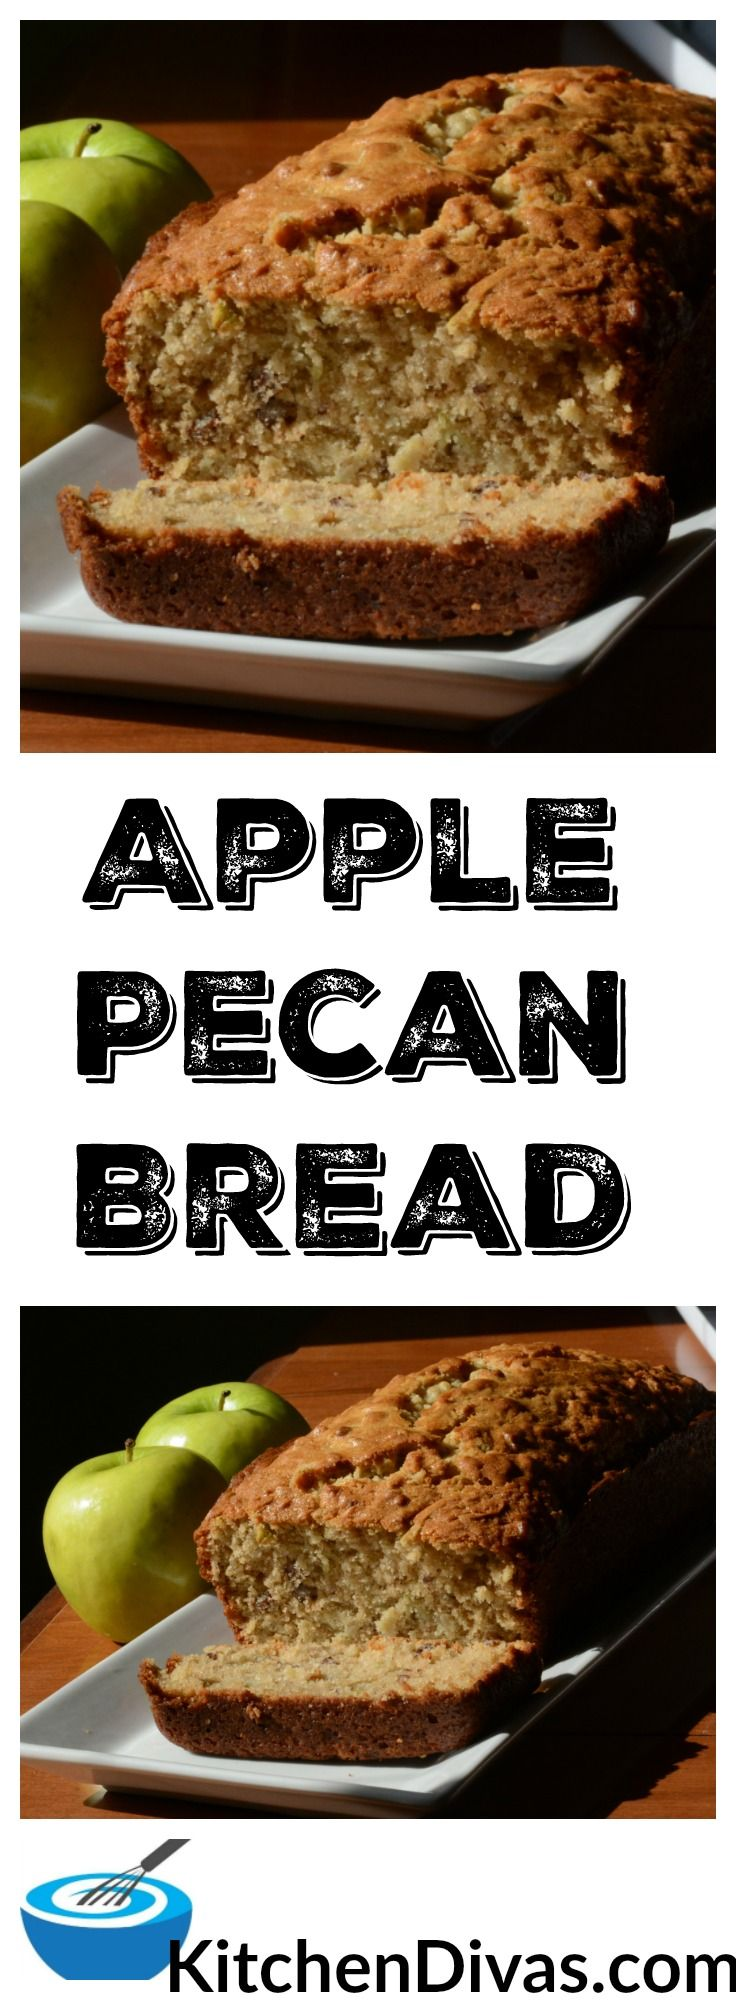 My friend Marcel, who passed away earlier this year, surprised me with this loaf years ago. I was totally expecting banana bread and was pleasantly surprised and so impressed with this loaf that I have been making it ever since. This recipe for Apple Pecan Bread is a total keeper! #dessert #recipe #apple